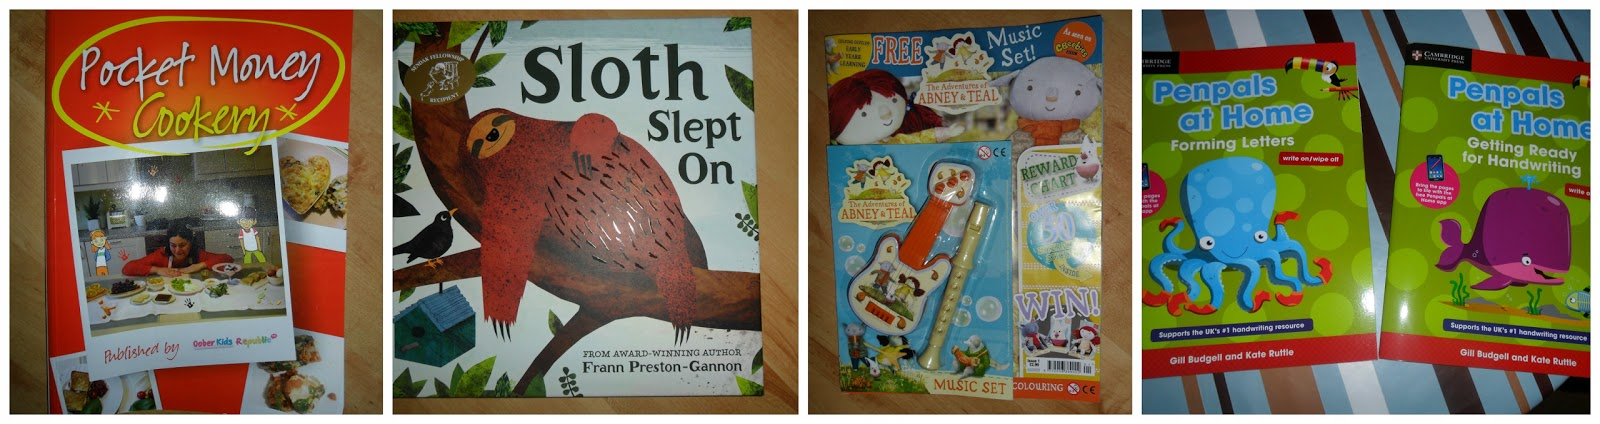 sloth slept on, pocket money cookery, abney teal, penpals at home book reviews uk